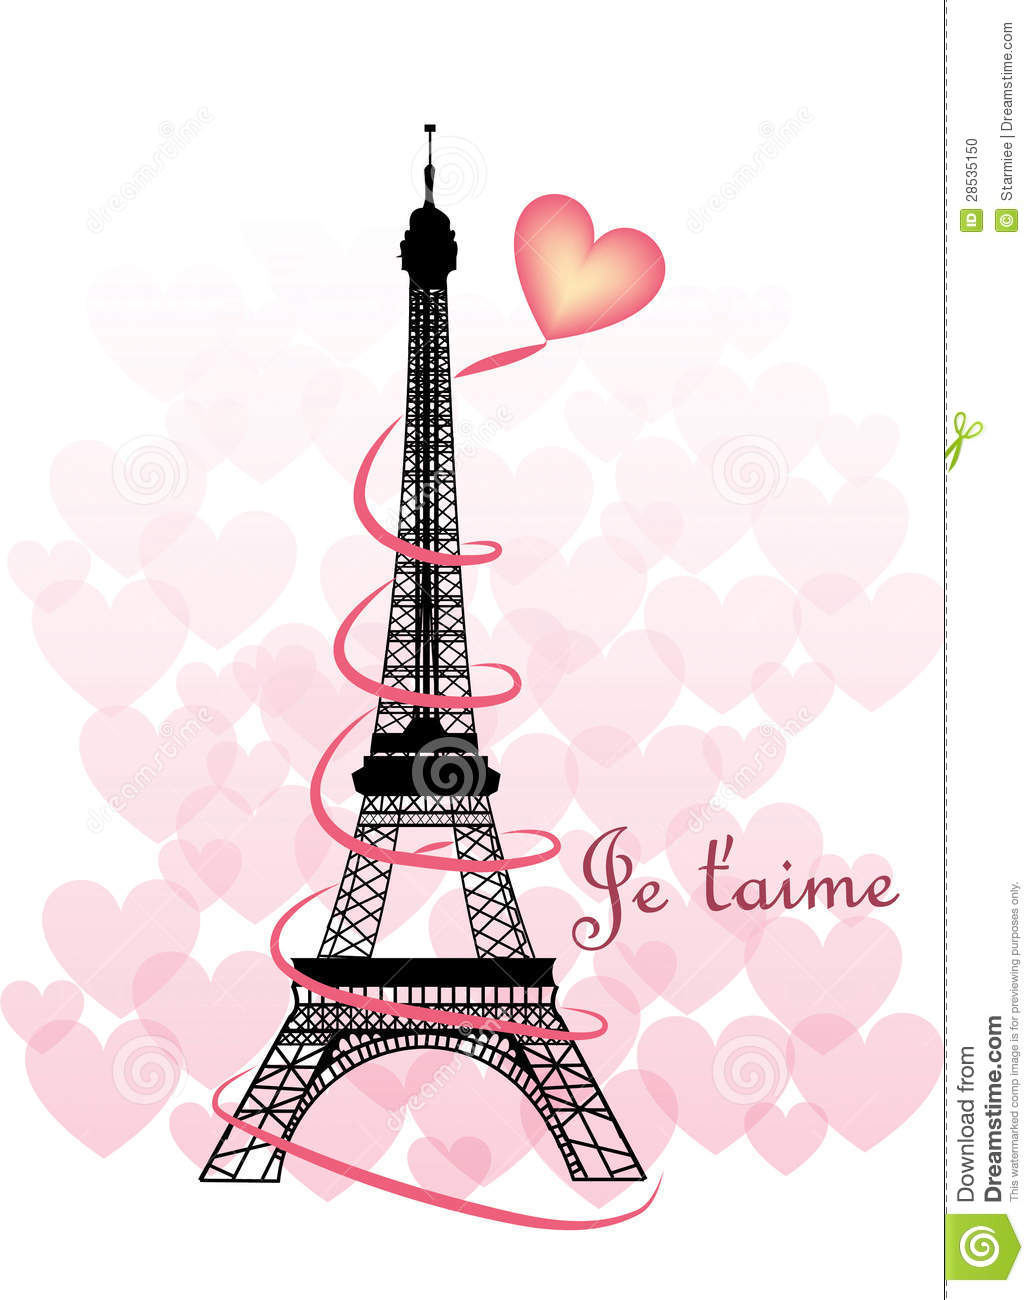 Valentine Eiffel Tower Stock Photo - Image: 28535150